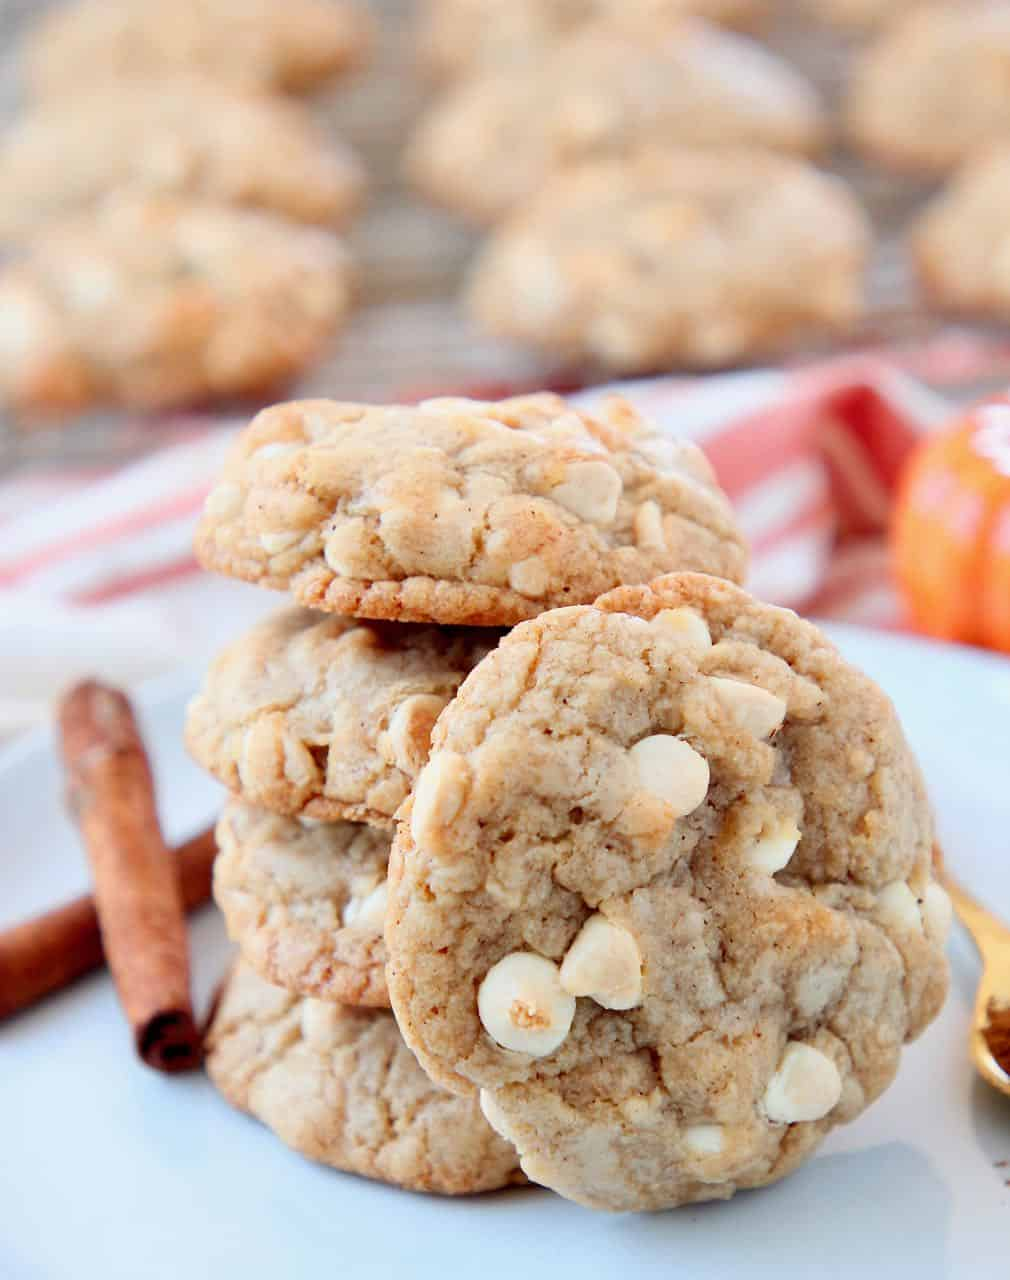 Pumpkin spice cookies with white chocolate chips on plate